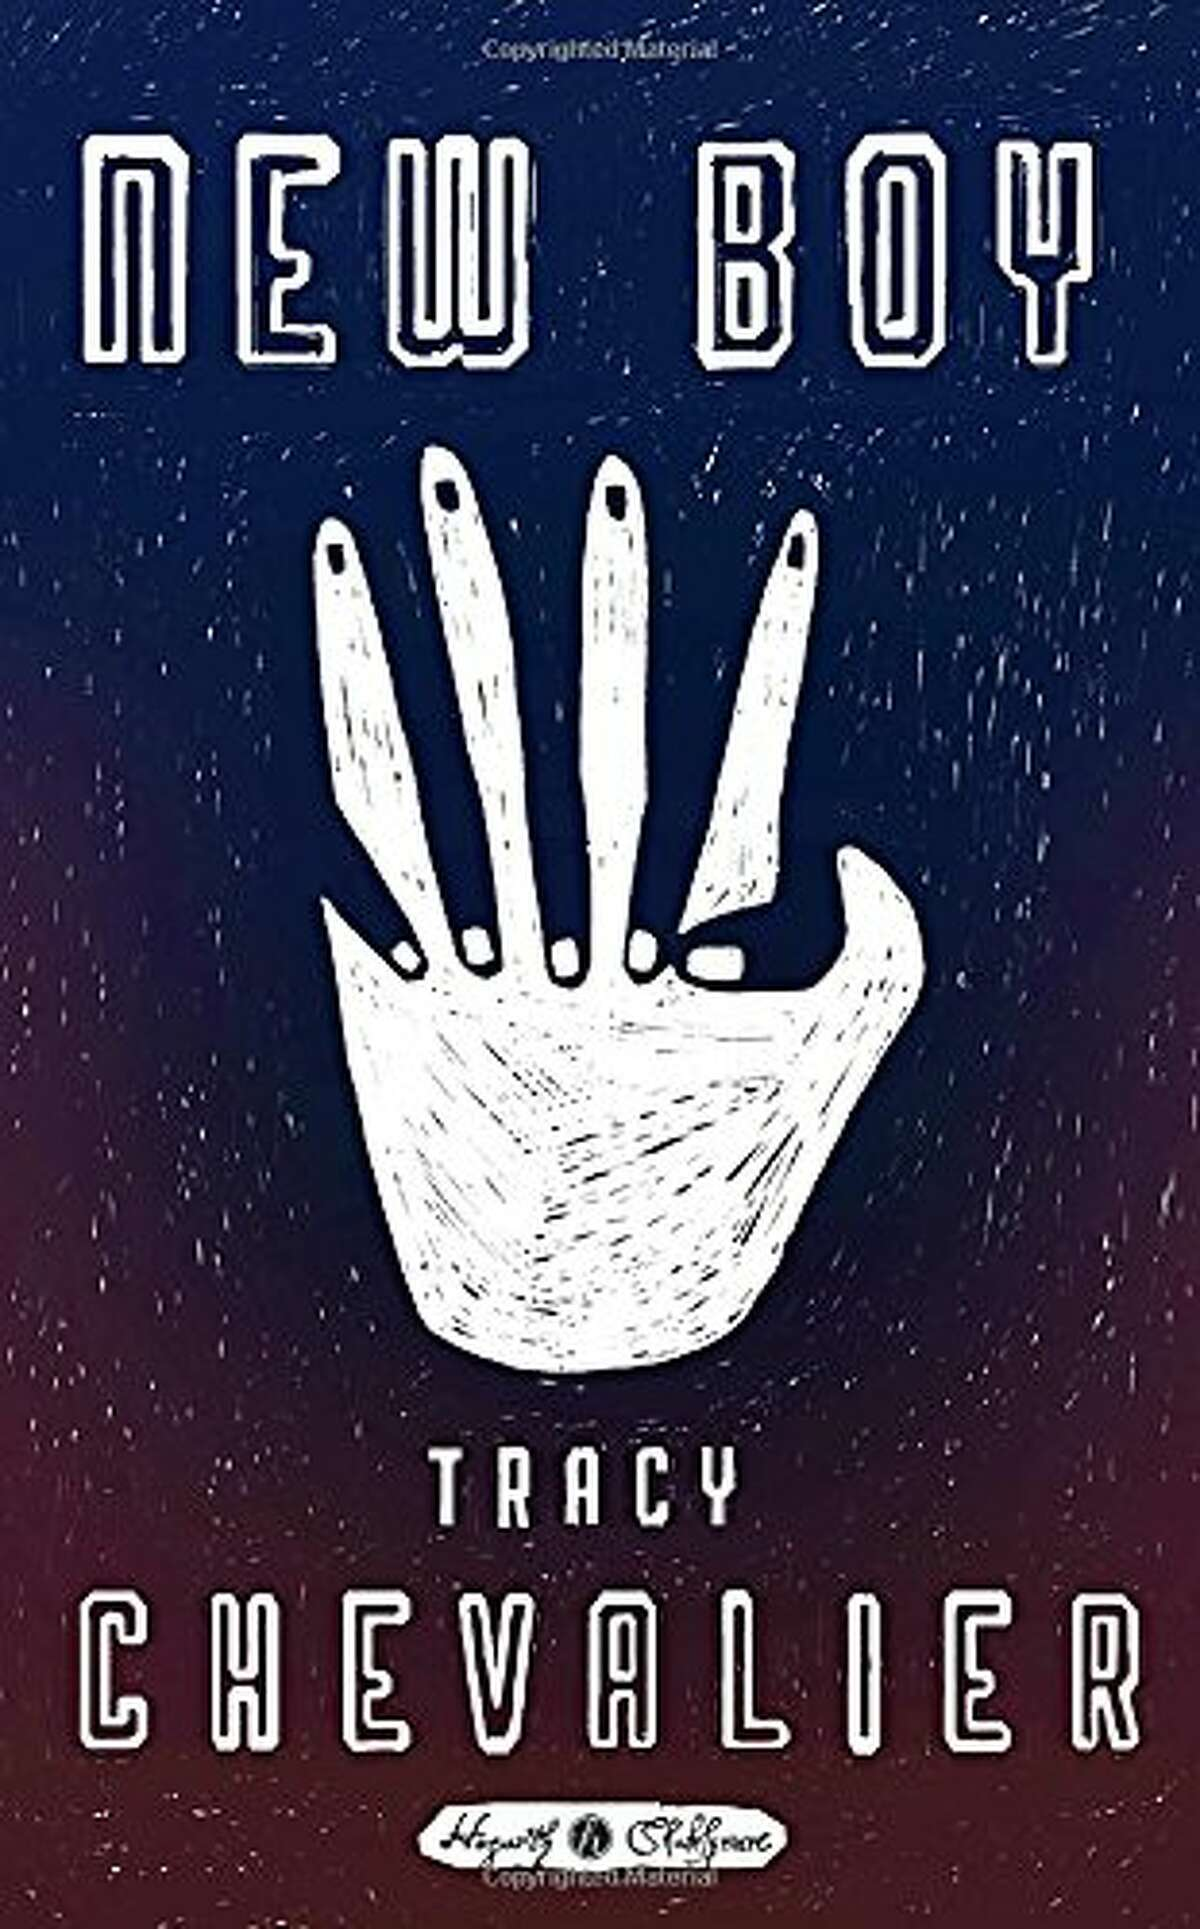 New Boy by Tracy Chevalier (May 16) This modern-day retelling of